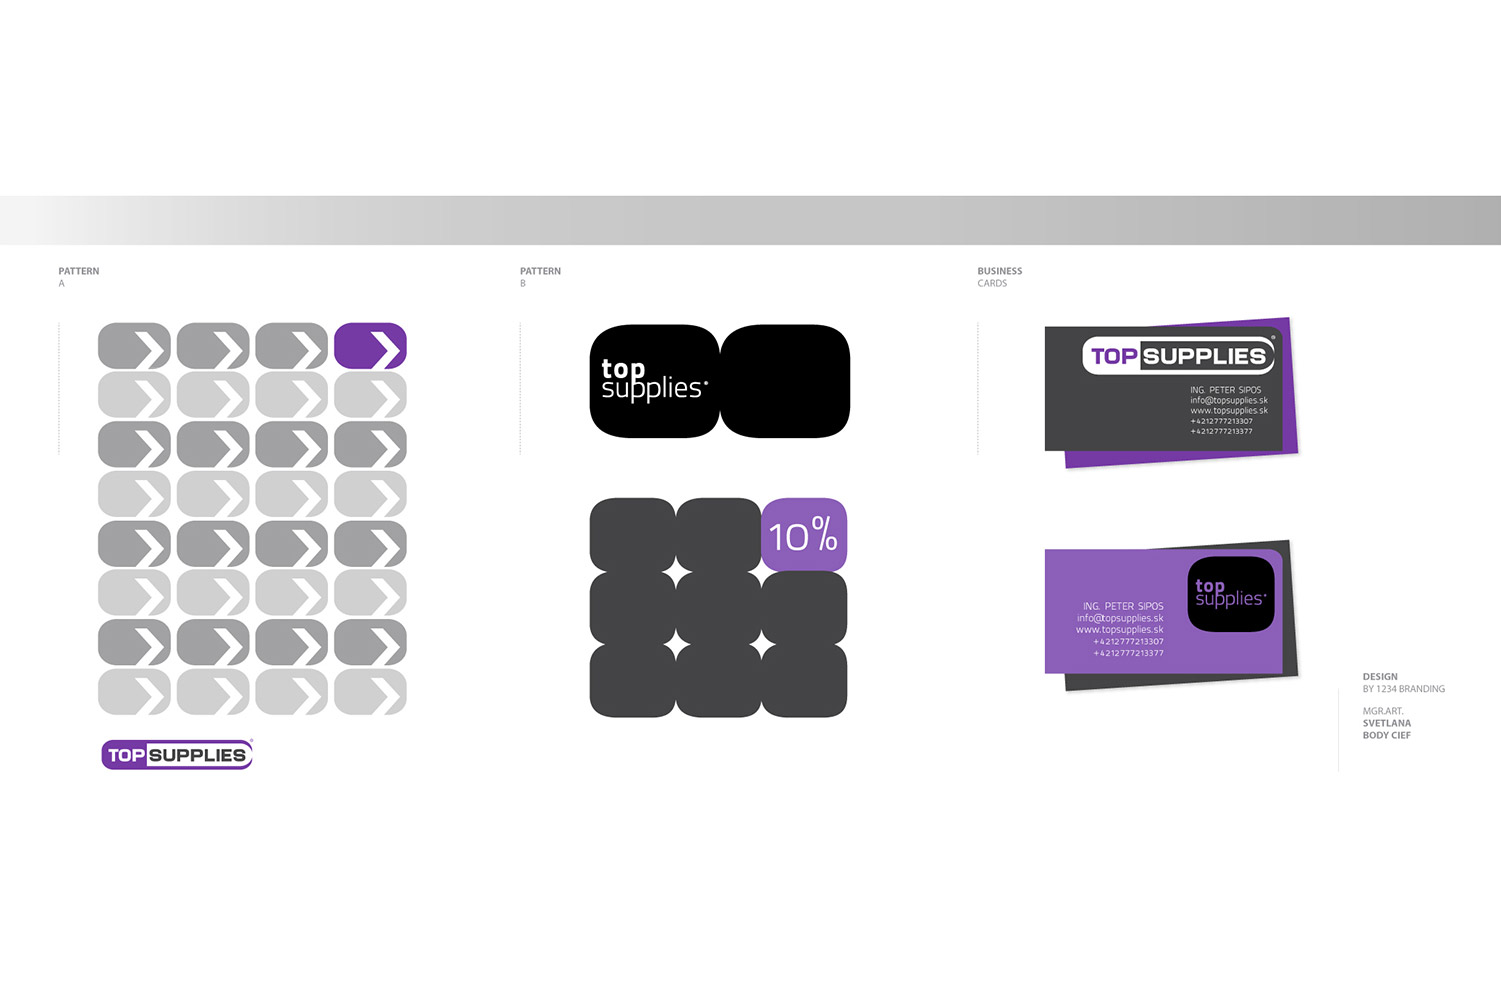 Top Supplies, corporate identity image